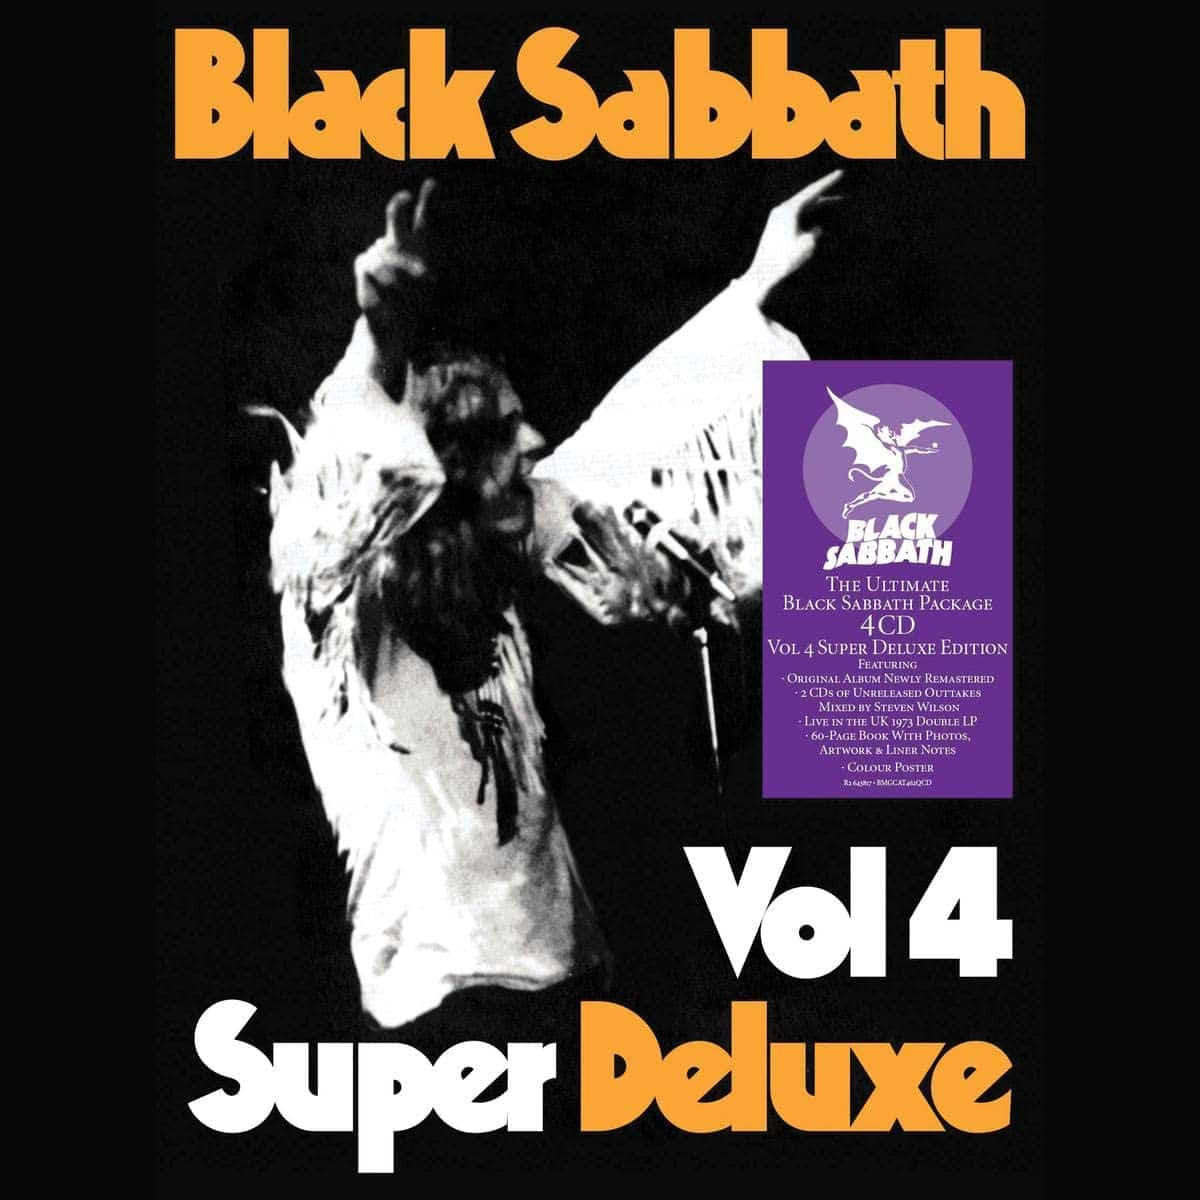 PRE-ORDER: Vol 4 (Super Deluxe) by Black Sabbath Rifftastic 5LP box set featuring a remastered version of the 72 classic, a 40-page case bound book, alternative versions, a full live performance from the Vol. 4 tour, a poster & more. normanrecords.com/records/184783…